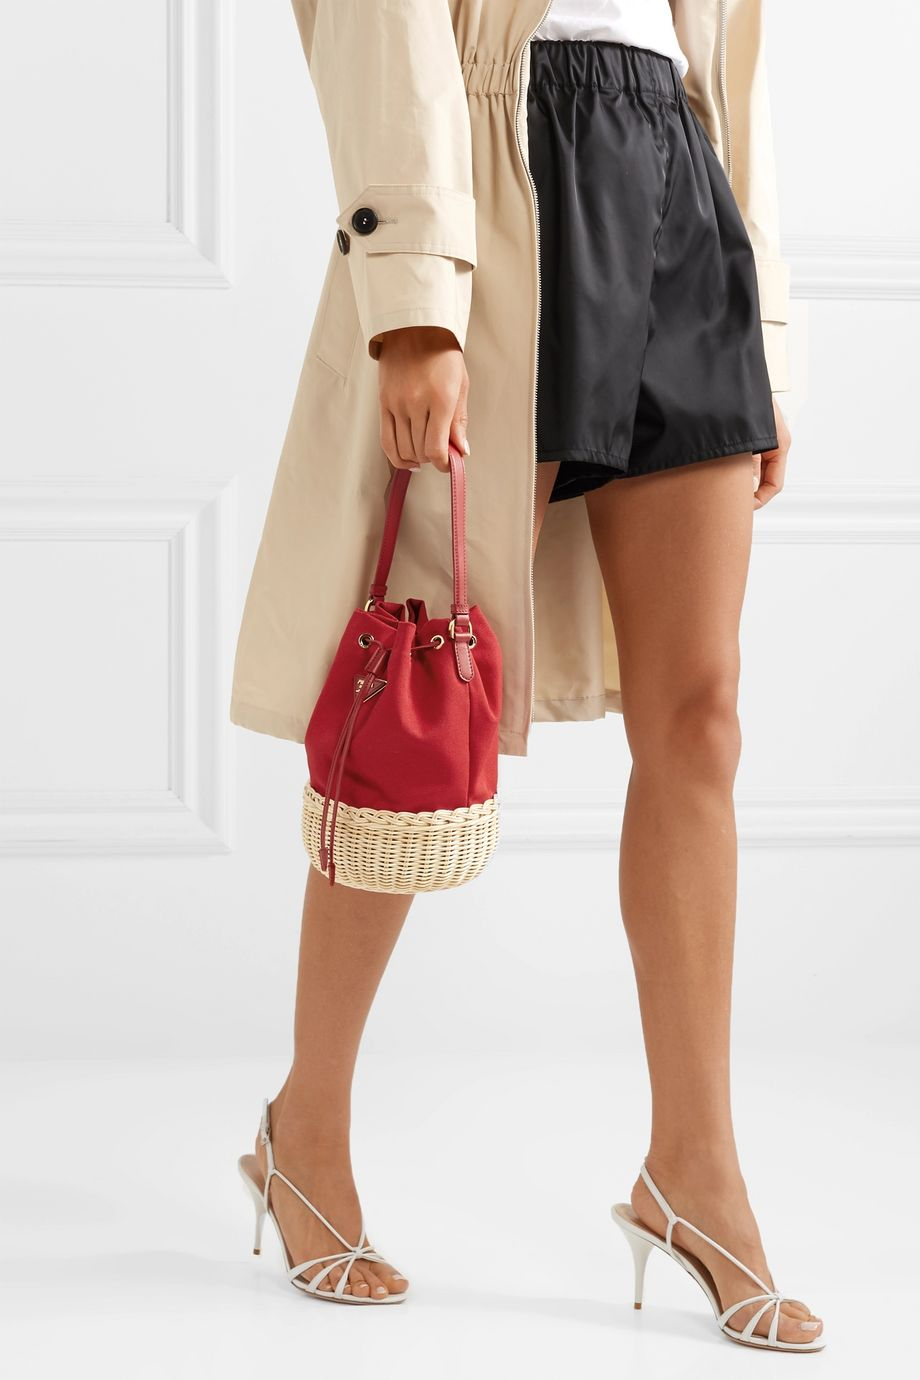 Prada Giardiniera leather-trimmed canvas and wicker shoulder bag